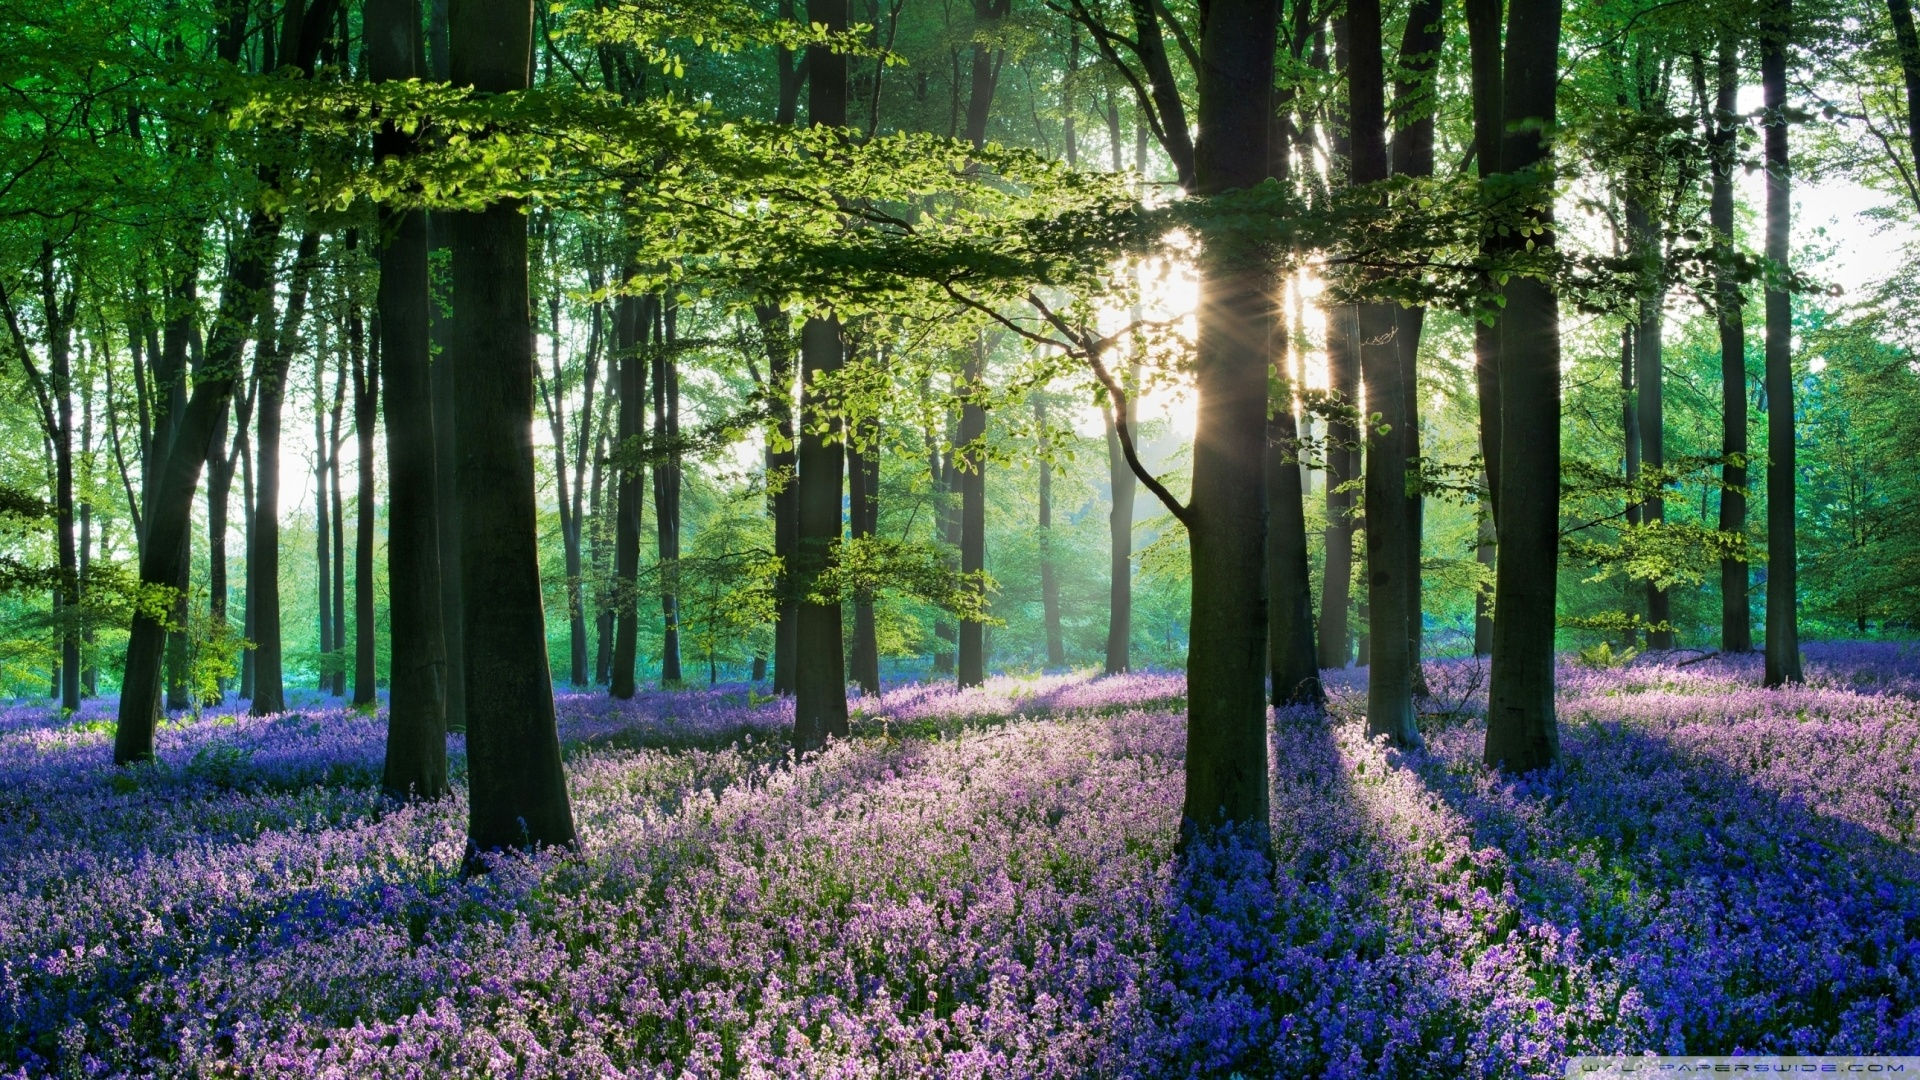 violet_forest_flowers_field-wallpaper-1920x1080 dottech org